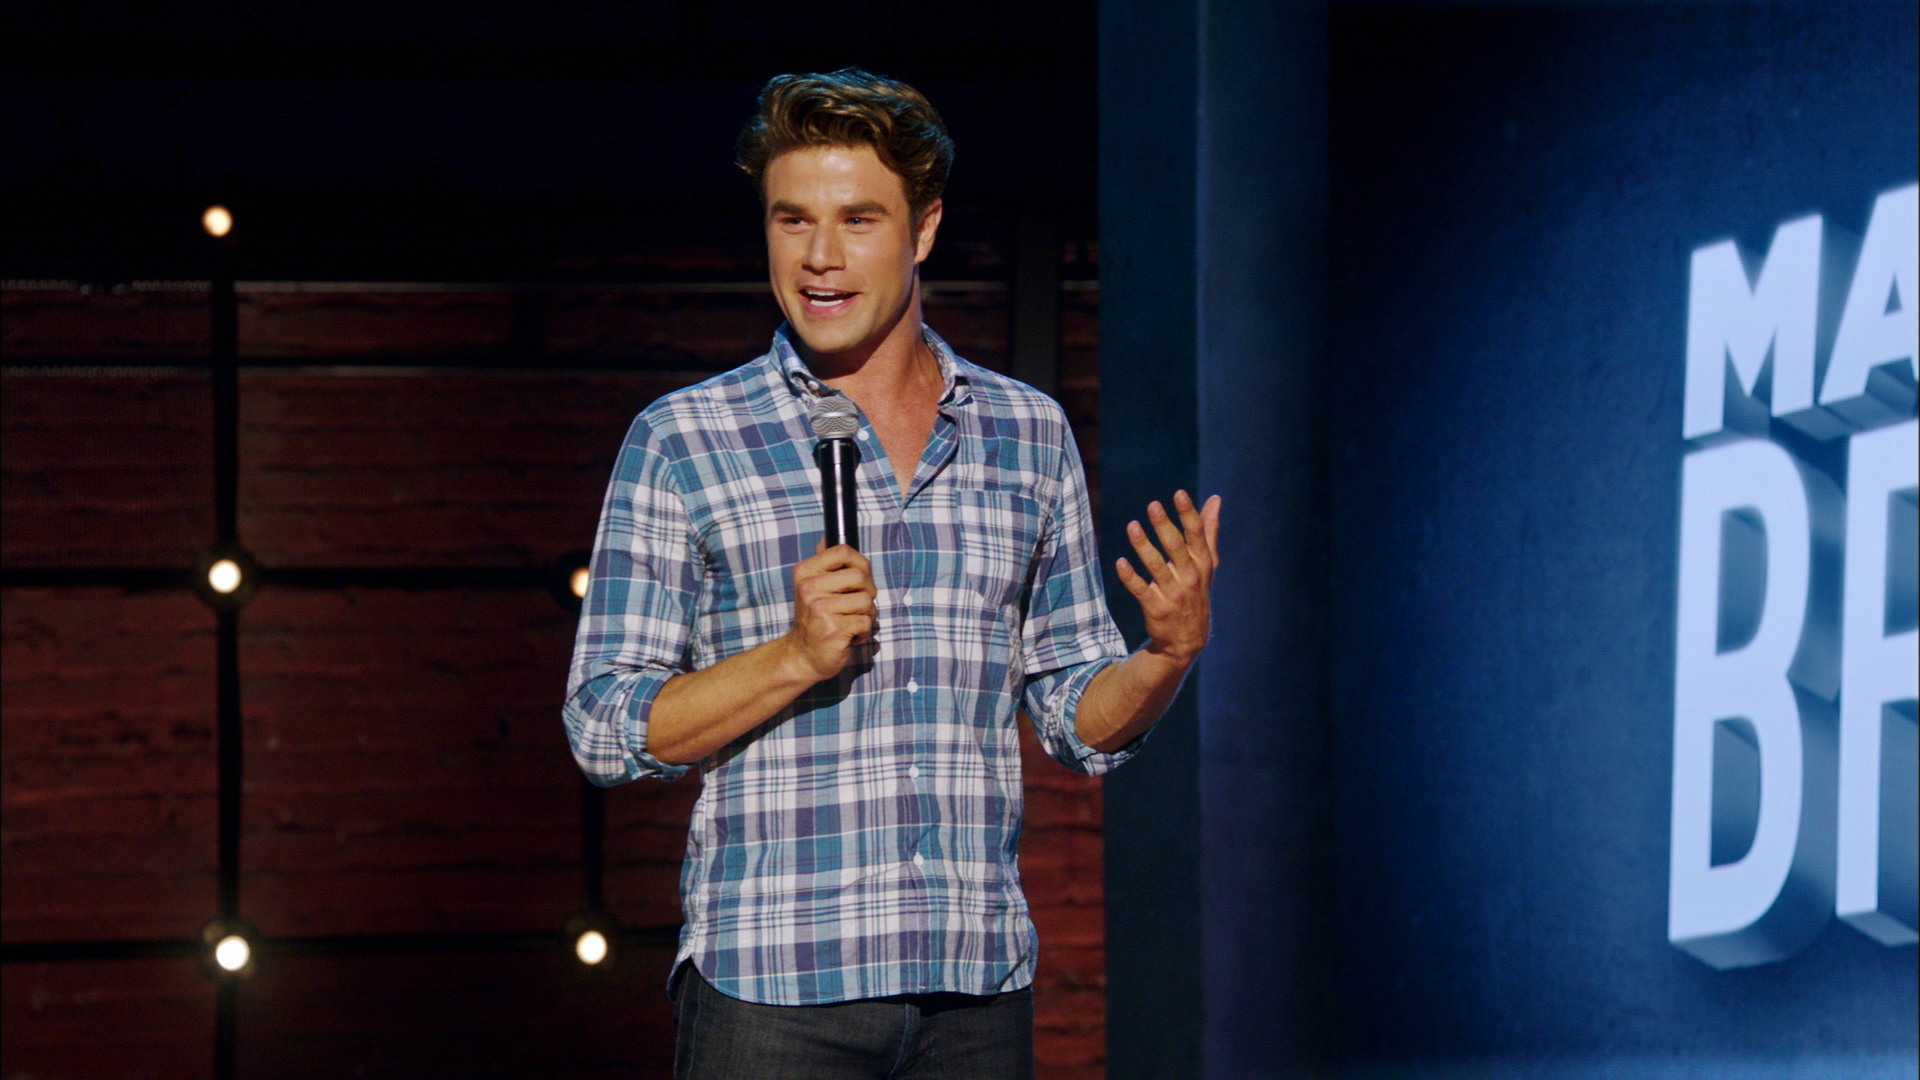 THE HALF HOUR: MATTHEW BROUSSARD - MATTHEW LOOKS LIKE A JERK - AND HE KNOWS IT